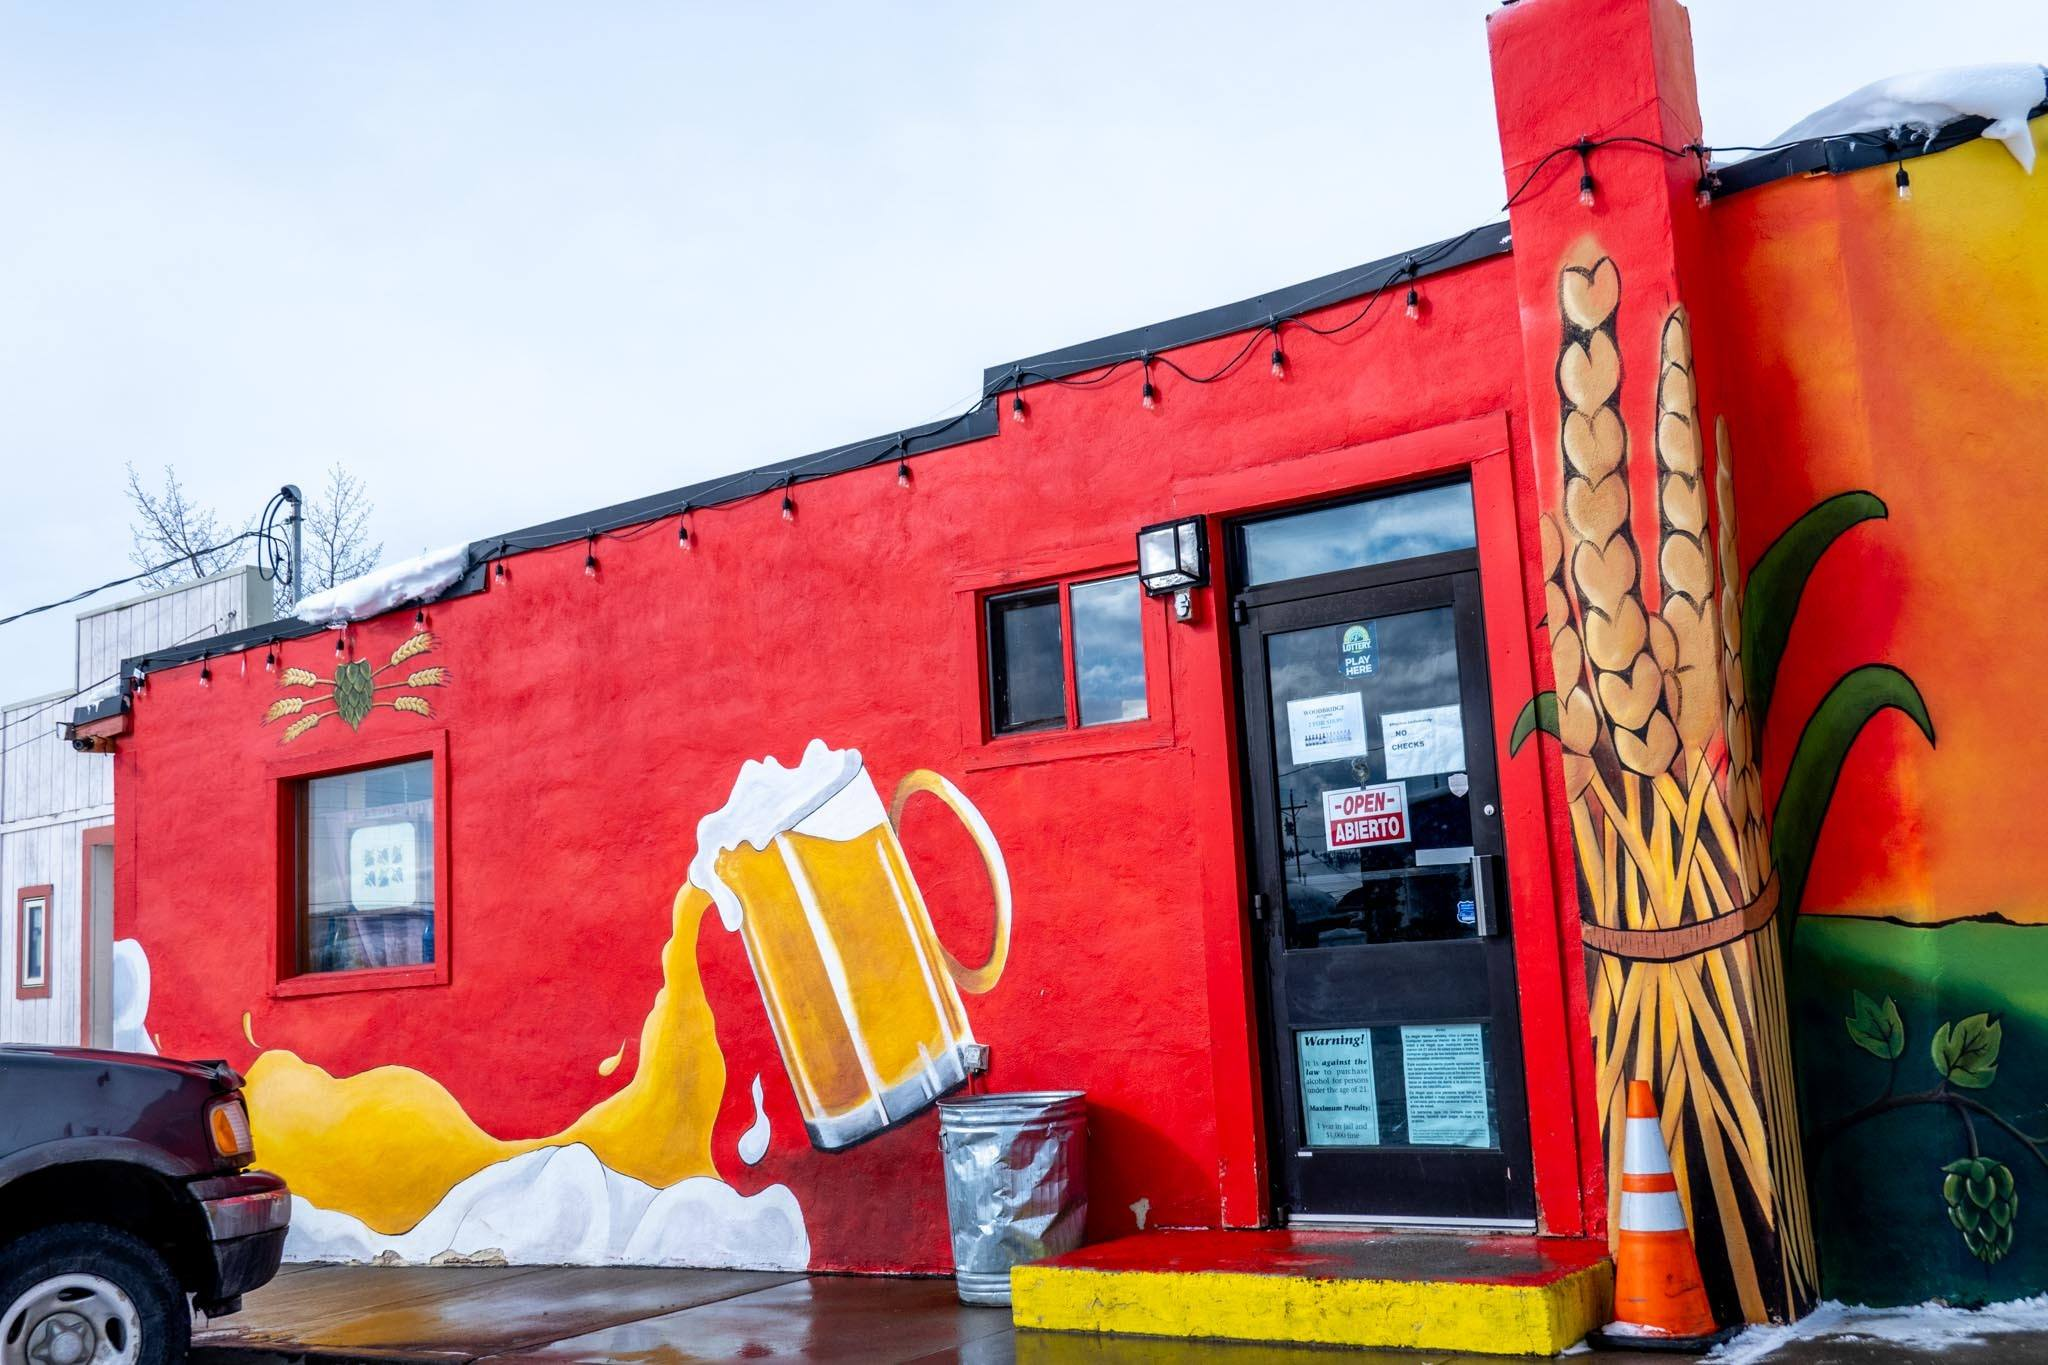 Beer mug and grains painted on side of liquor store